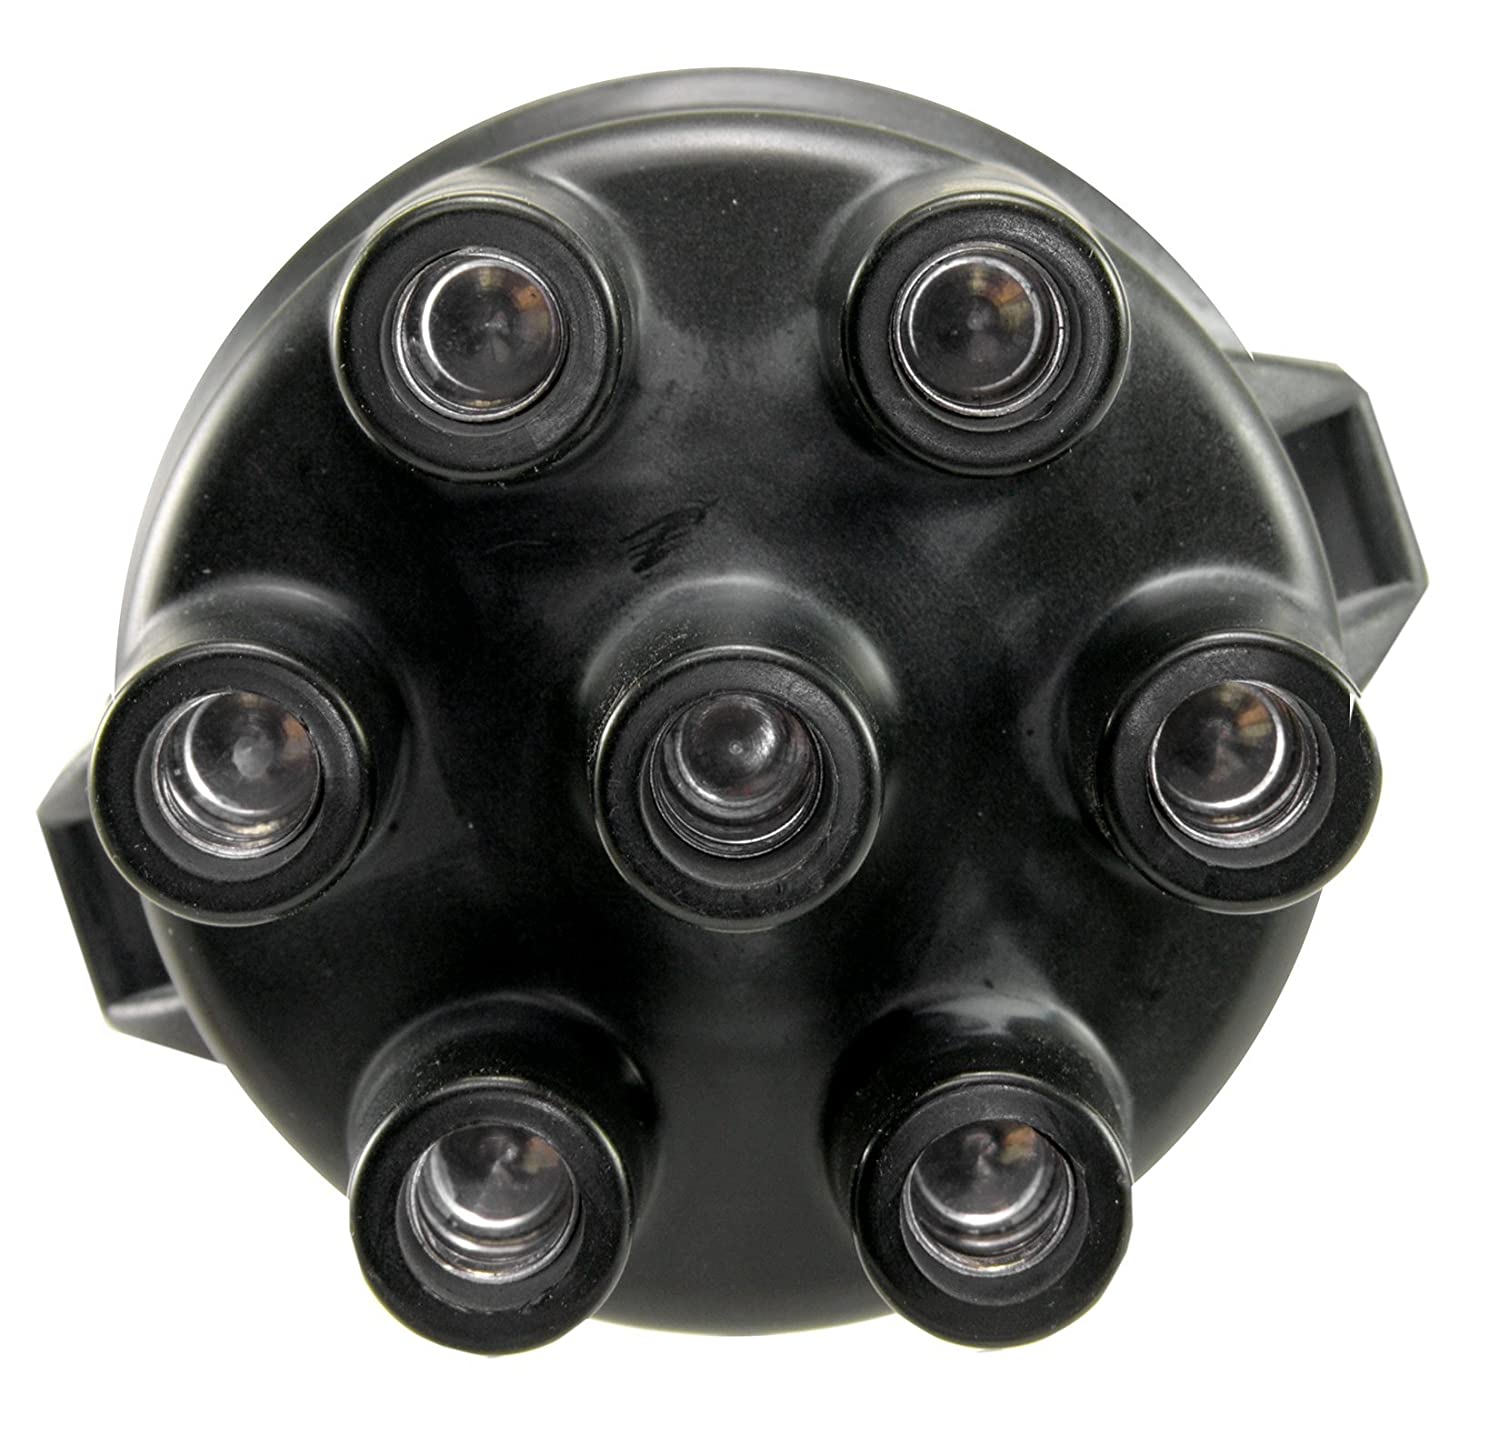 WVE by NTK 5D1256 Distributor Cap